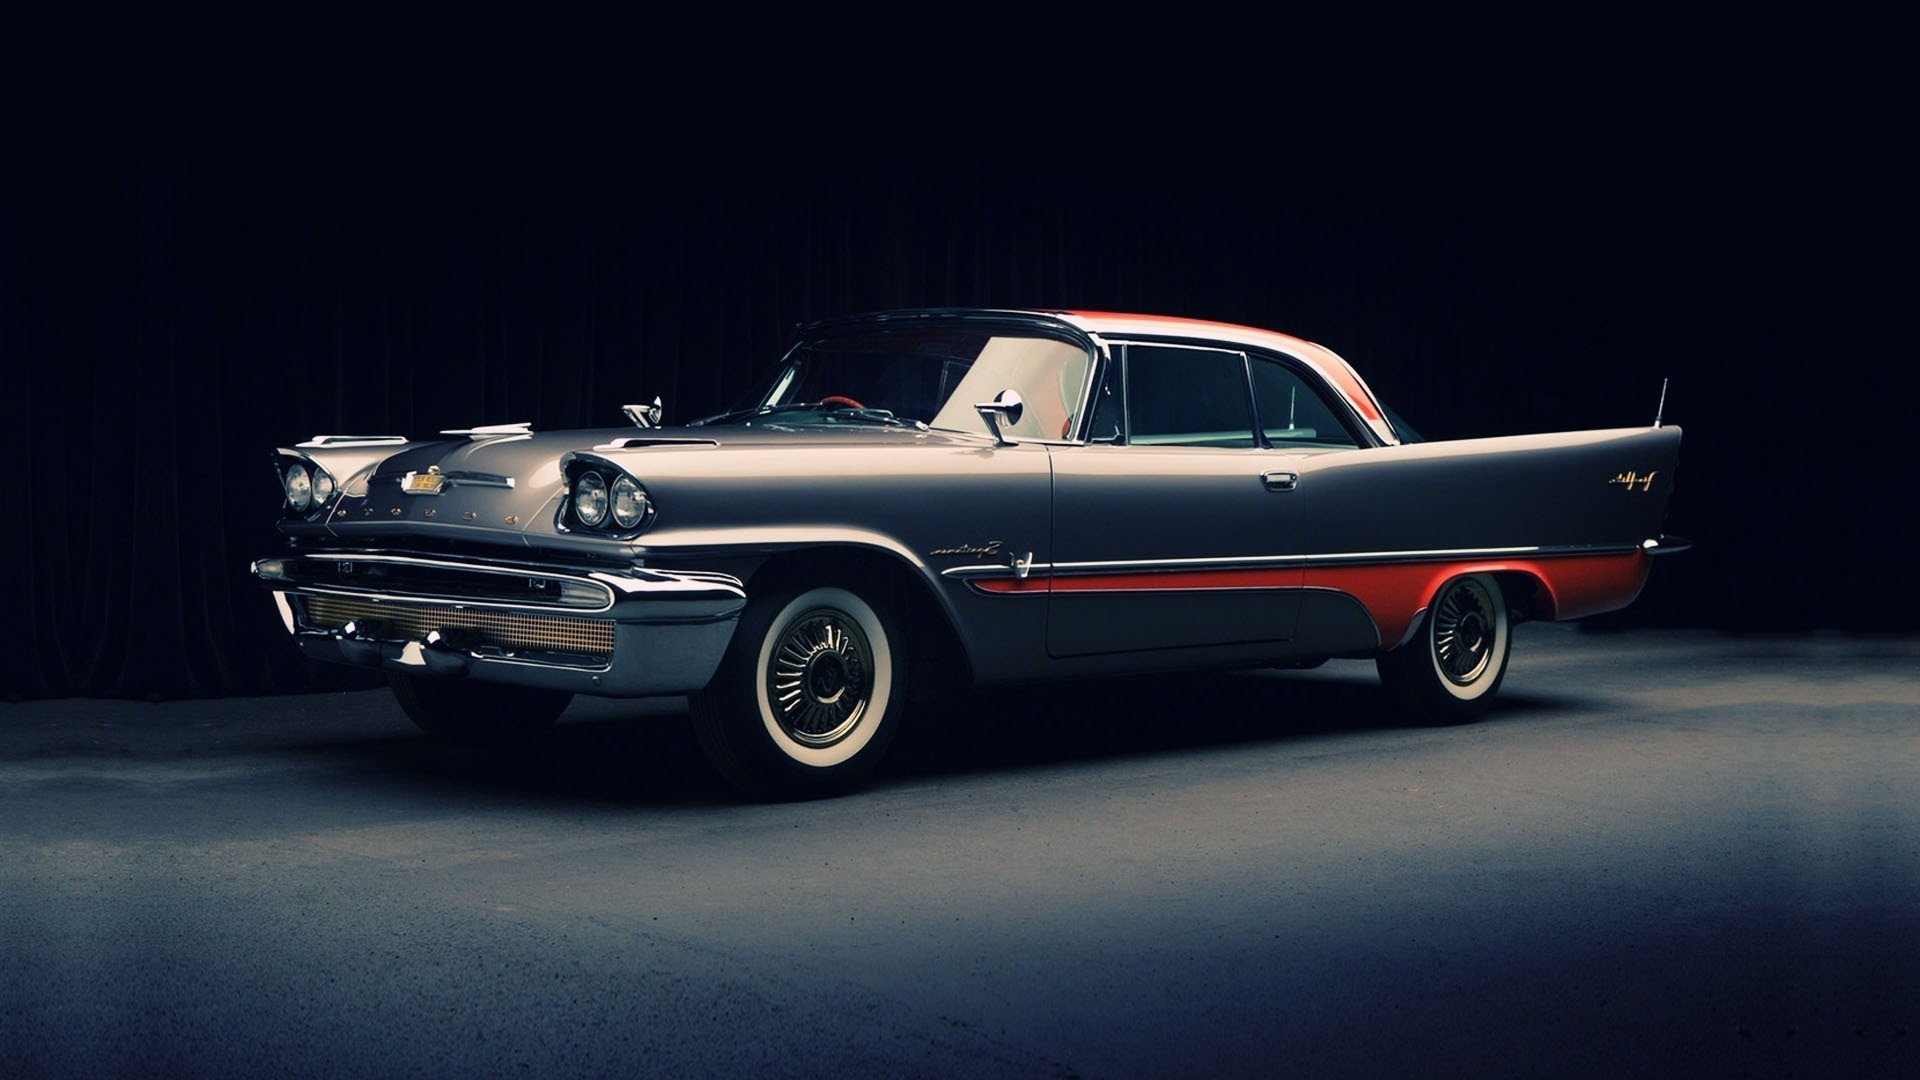 Old Classic Cars Wallpaper